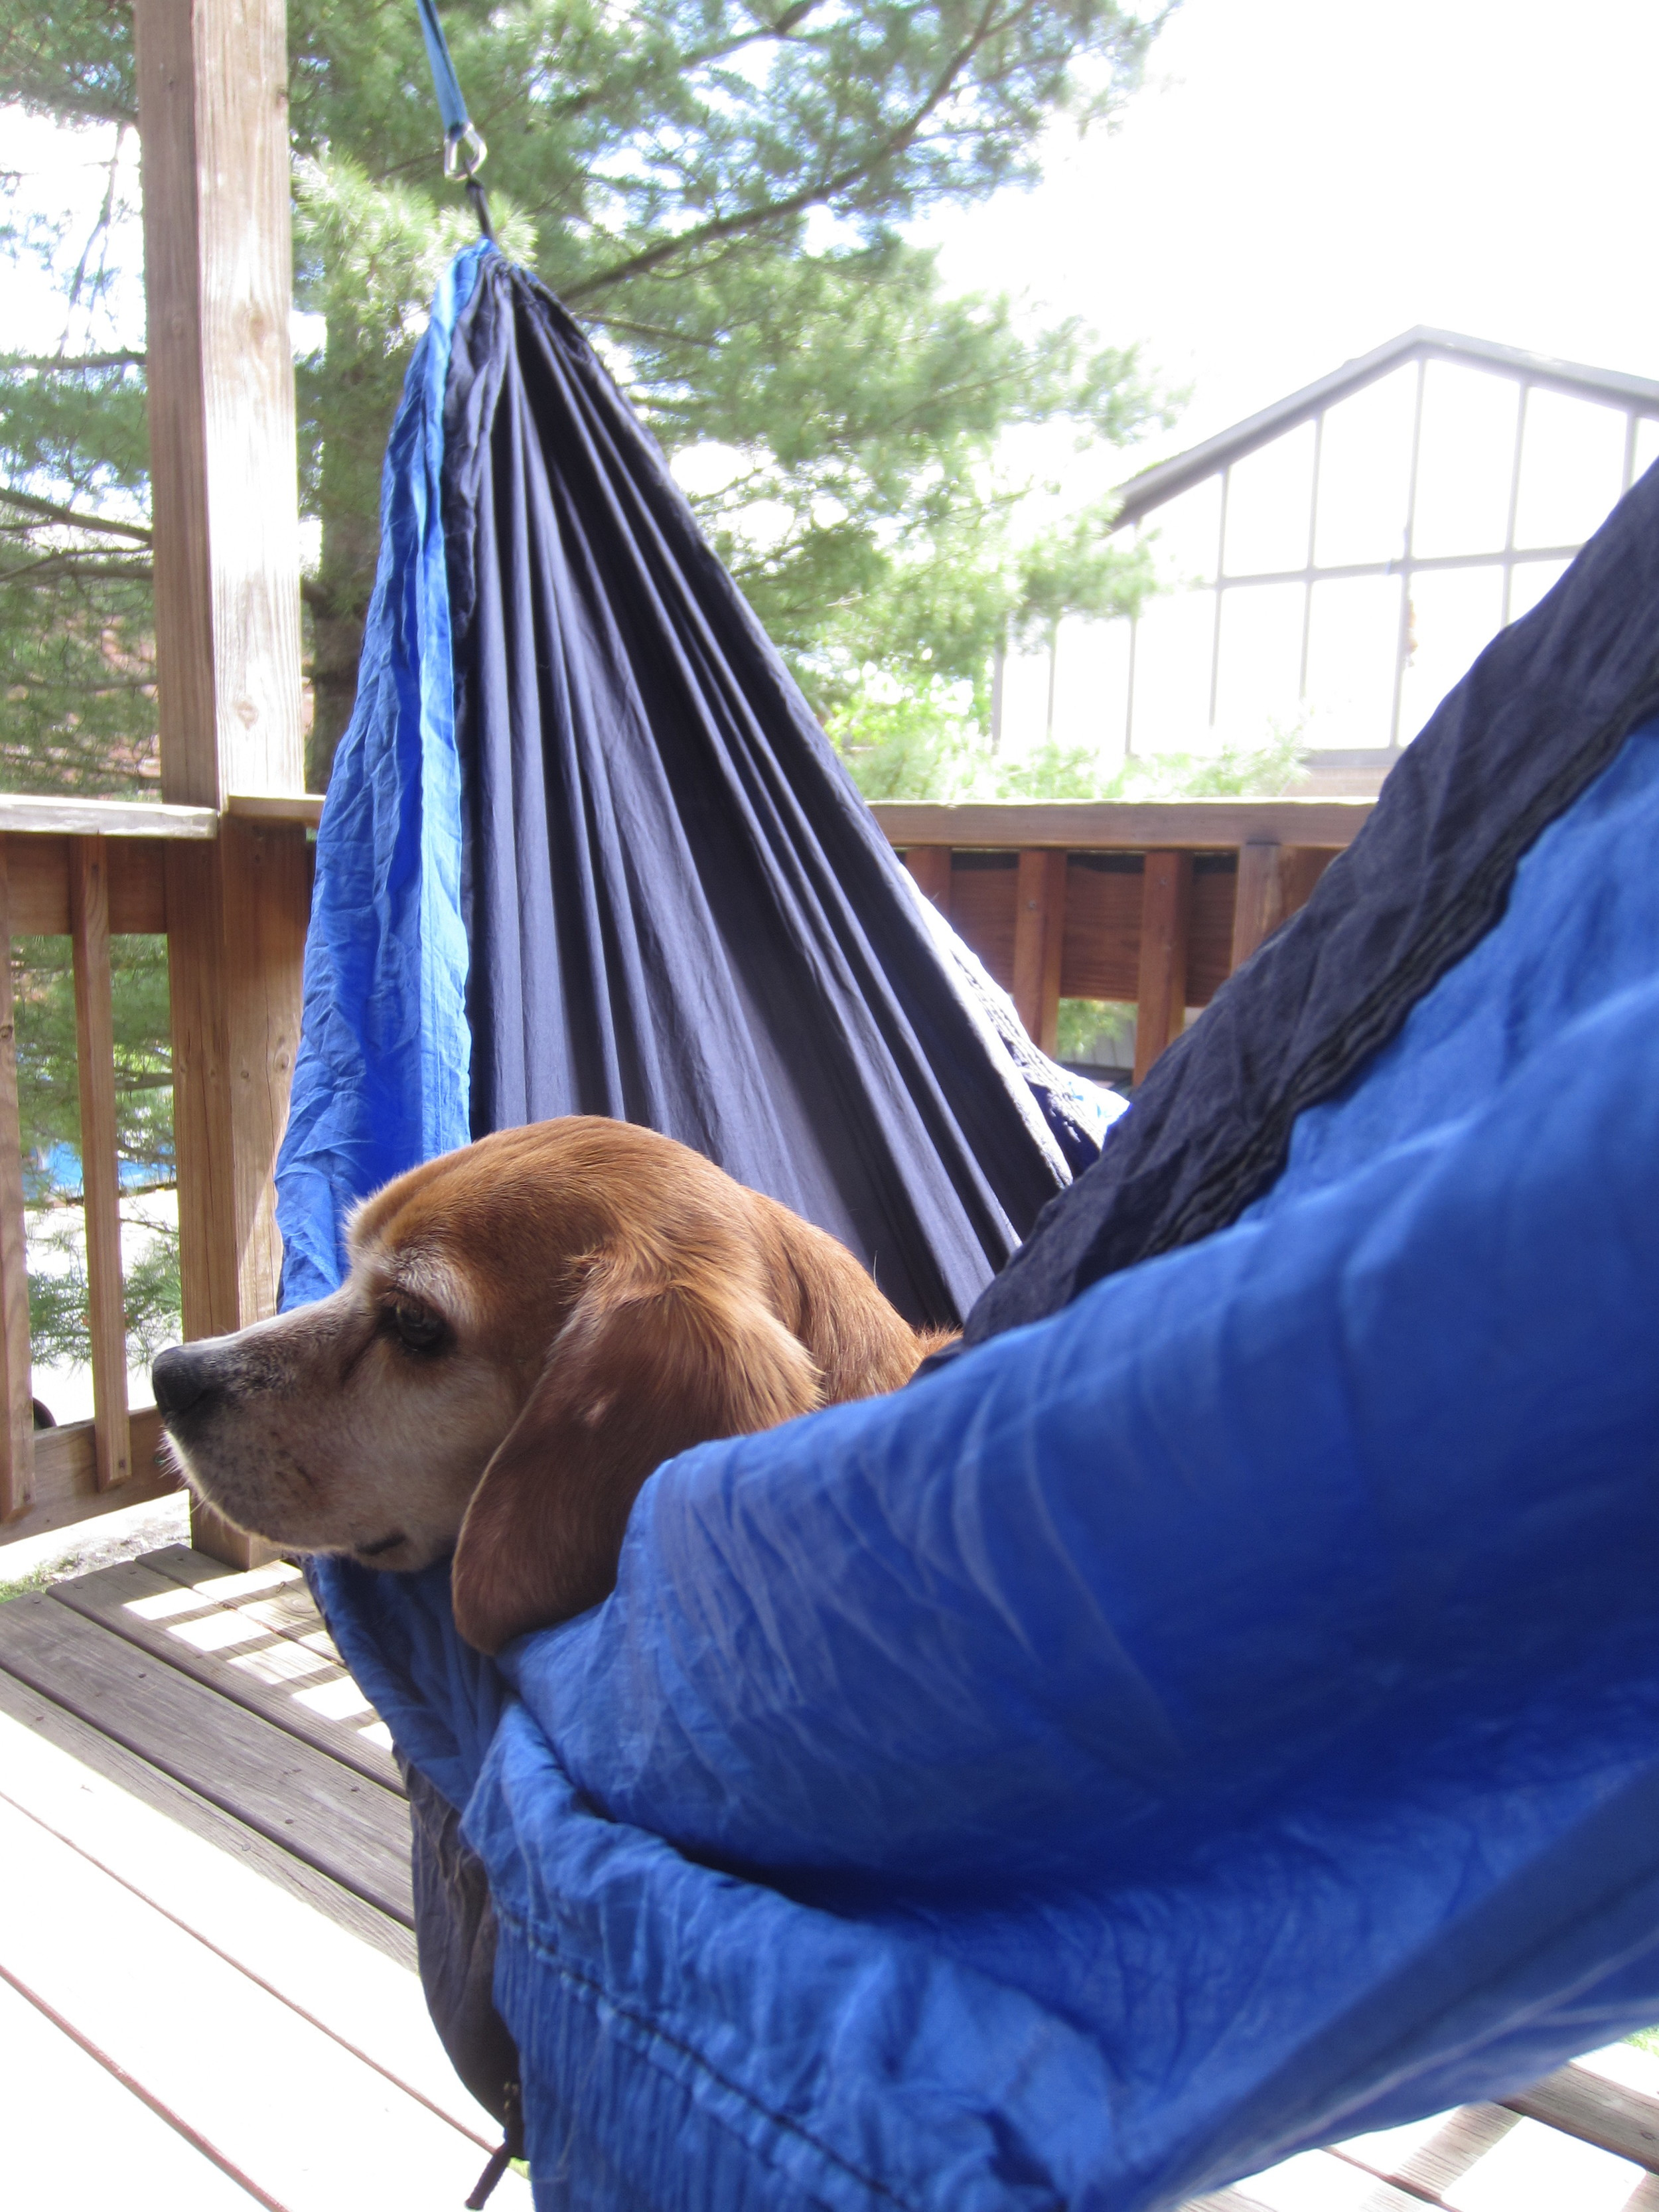 I'm not the only one who enjoys a sunny afternoon in the hammock.